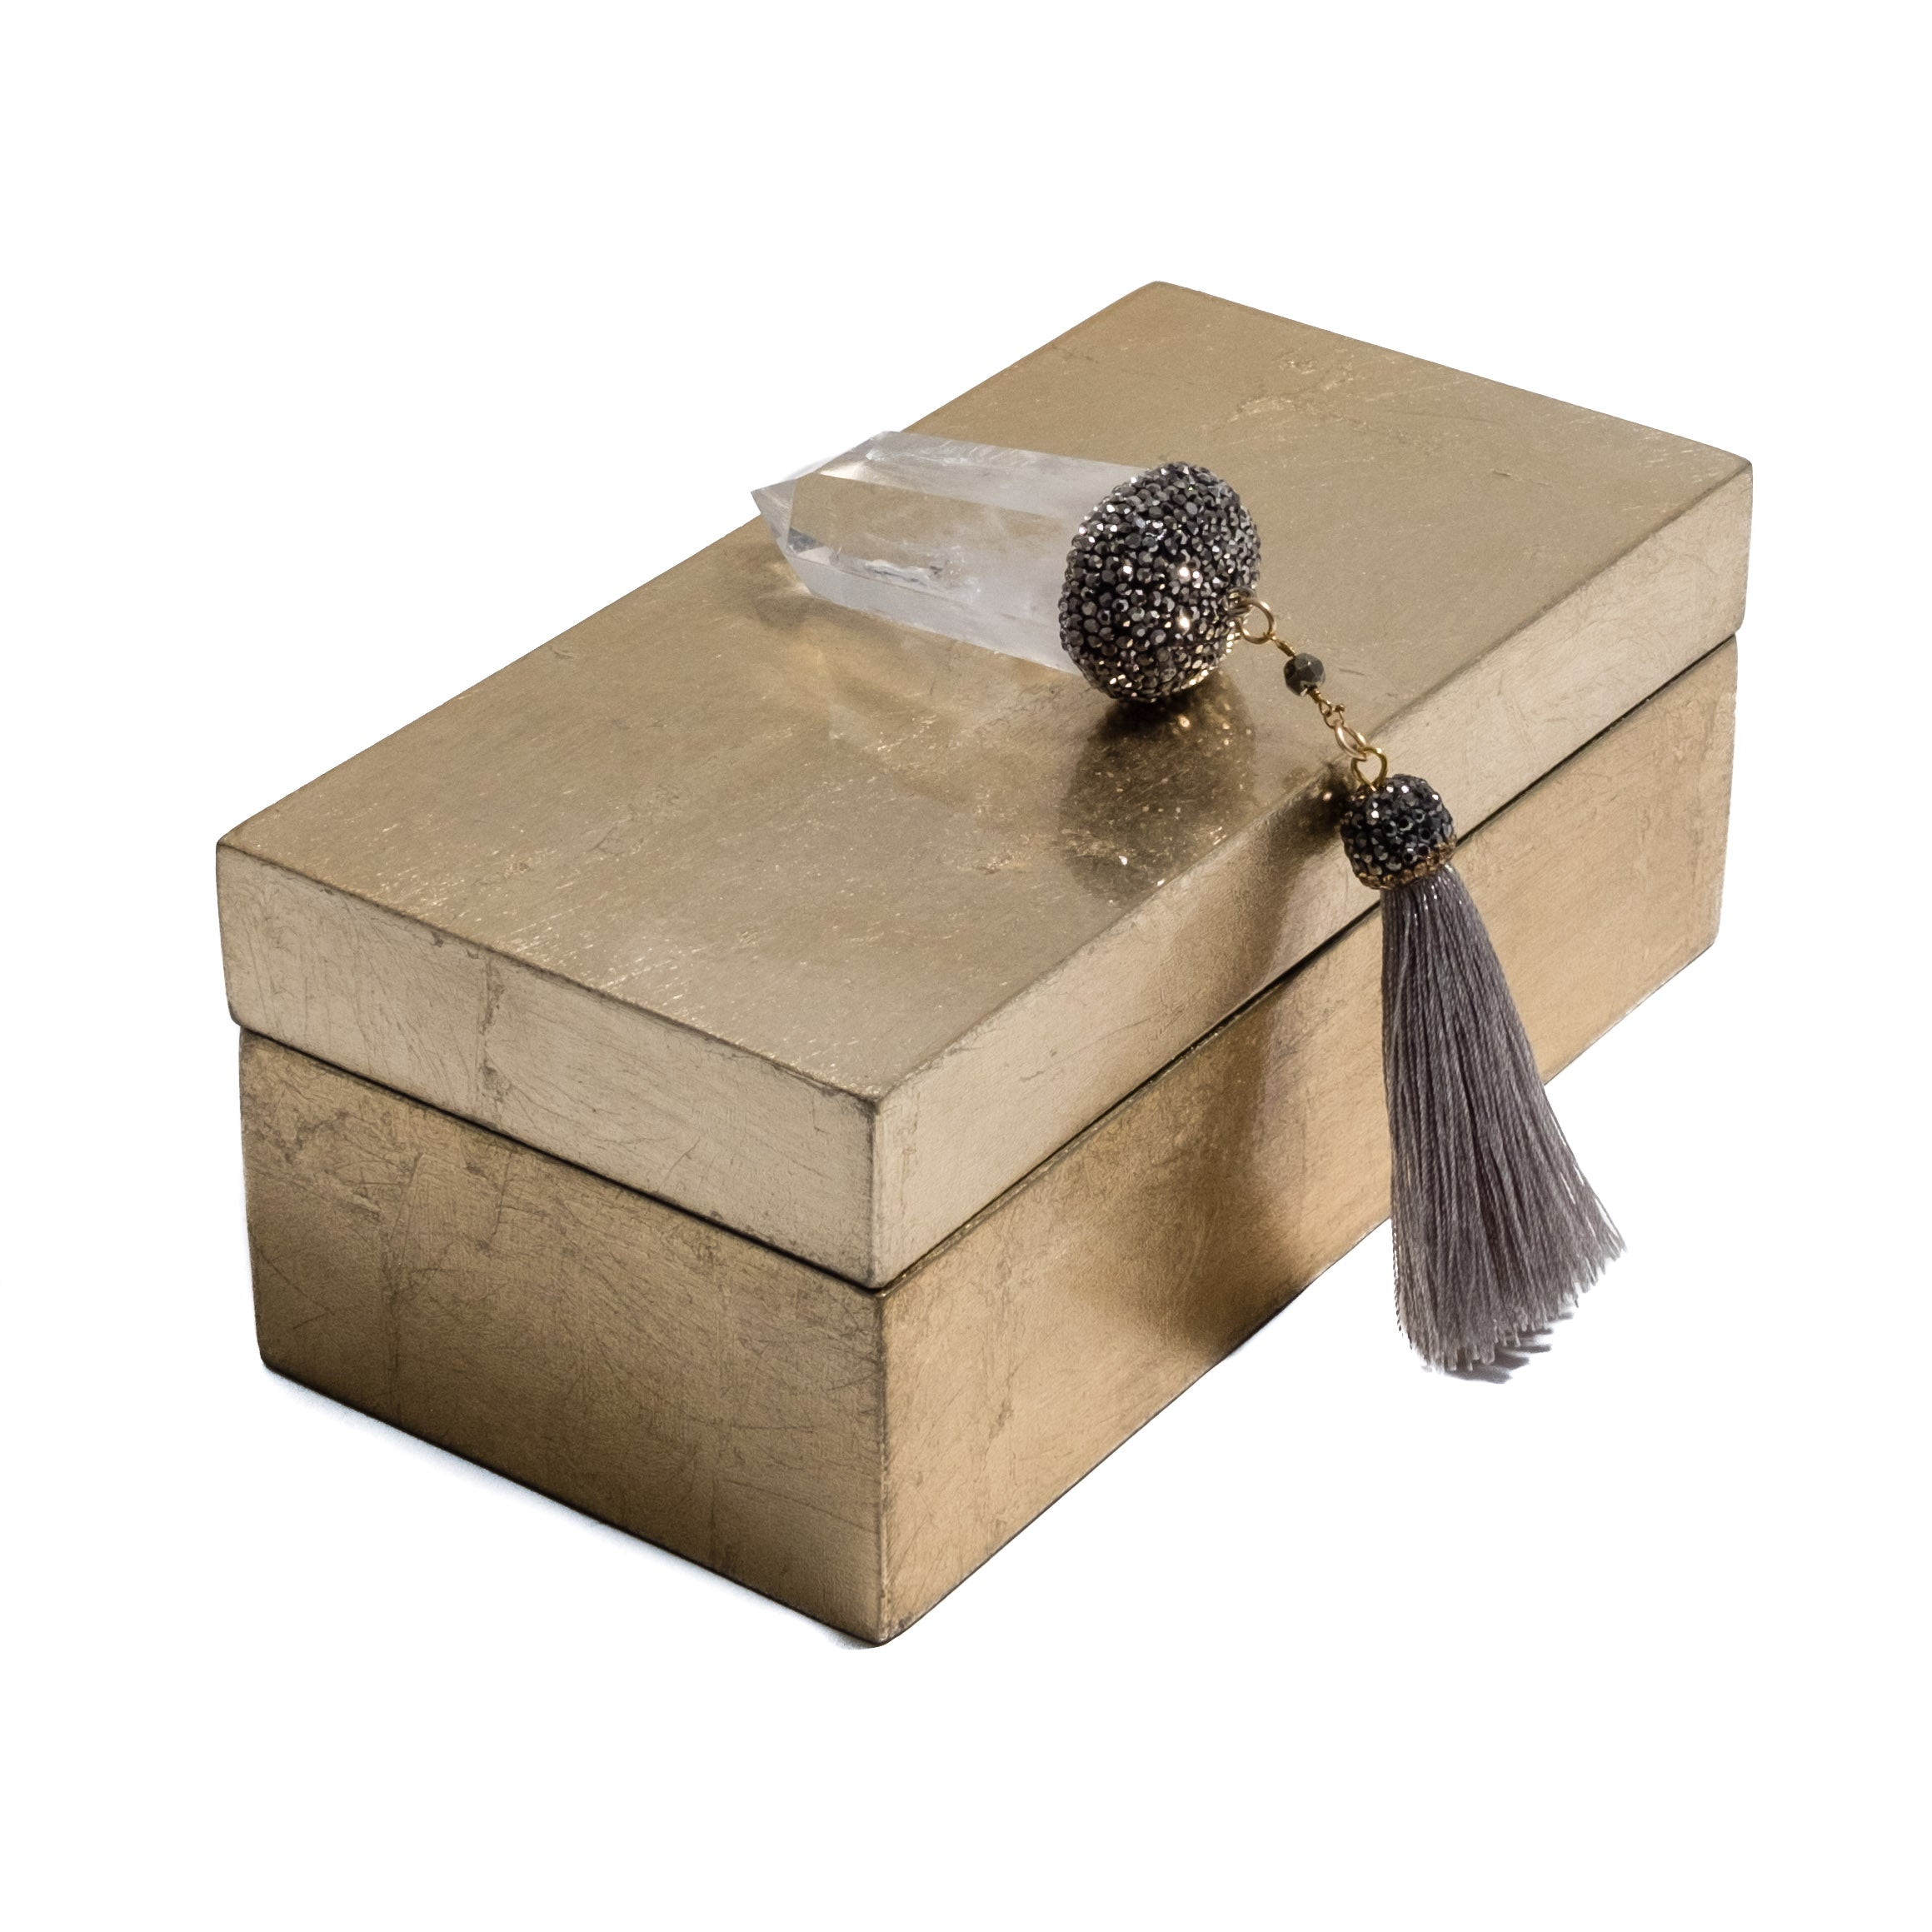 Unique gift boxes in gold and quartz tassel by Mapleton Drive